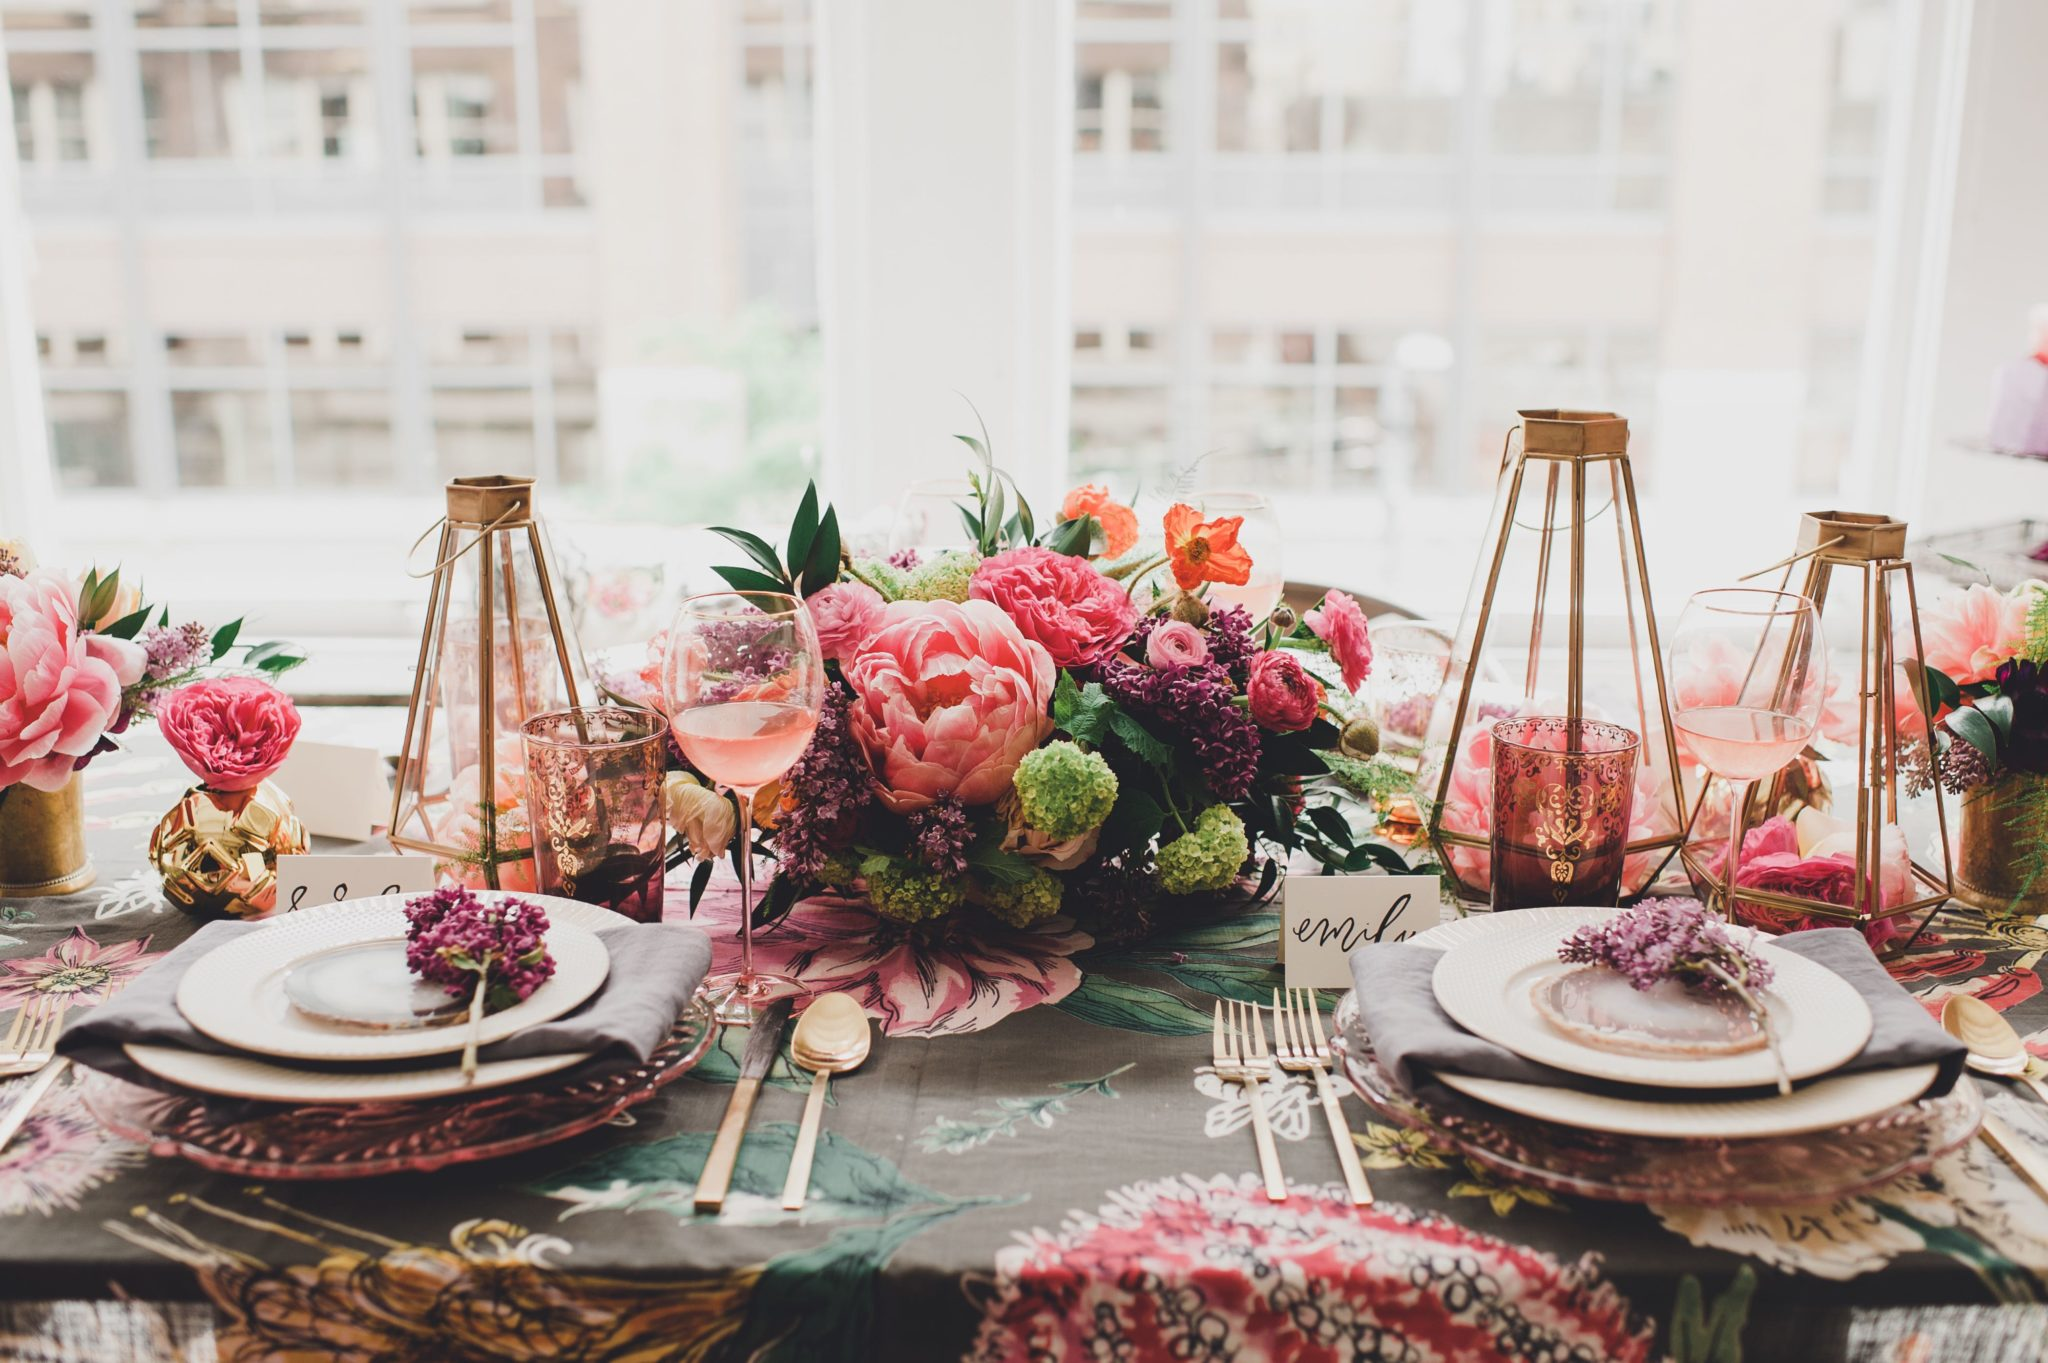 Table set with blue and pink tablecloth, white plates, gold flatware, gold candlesticks and pink flowers.